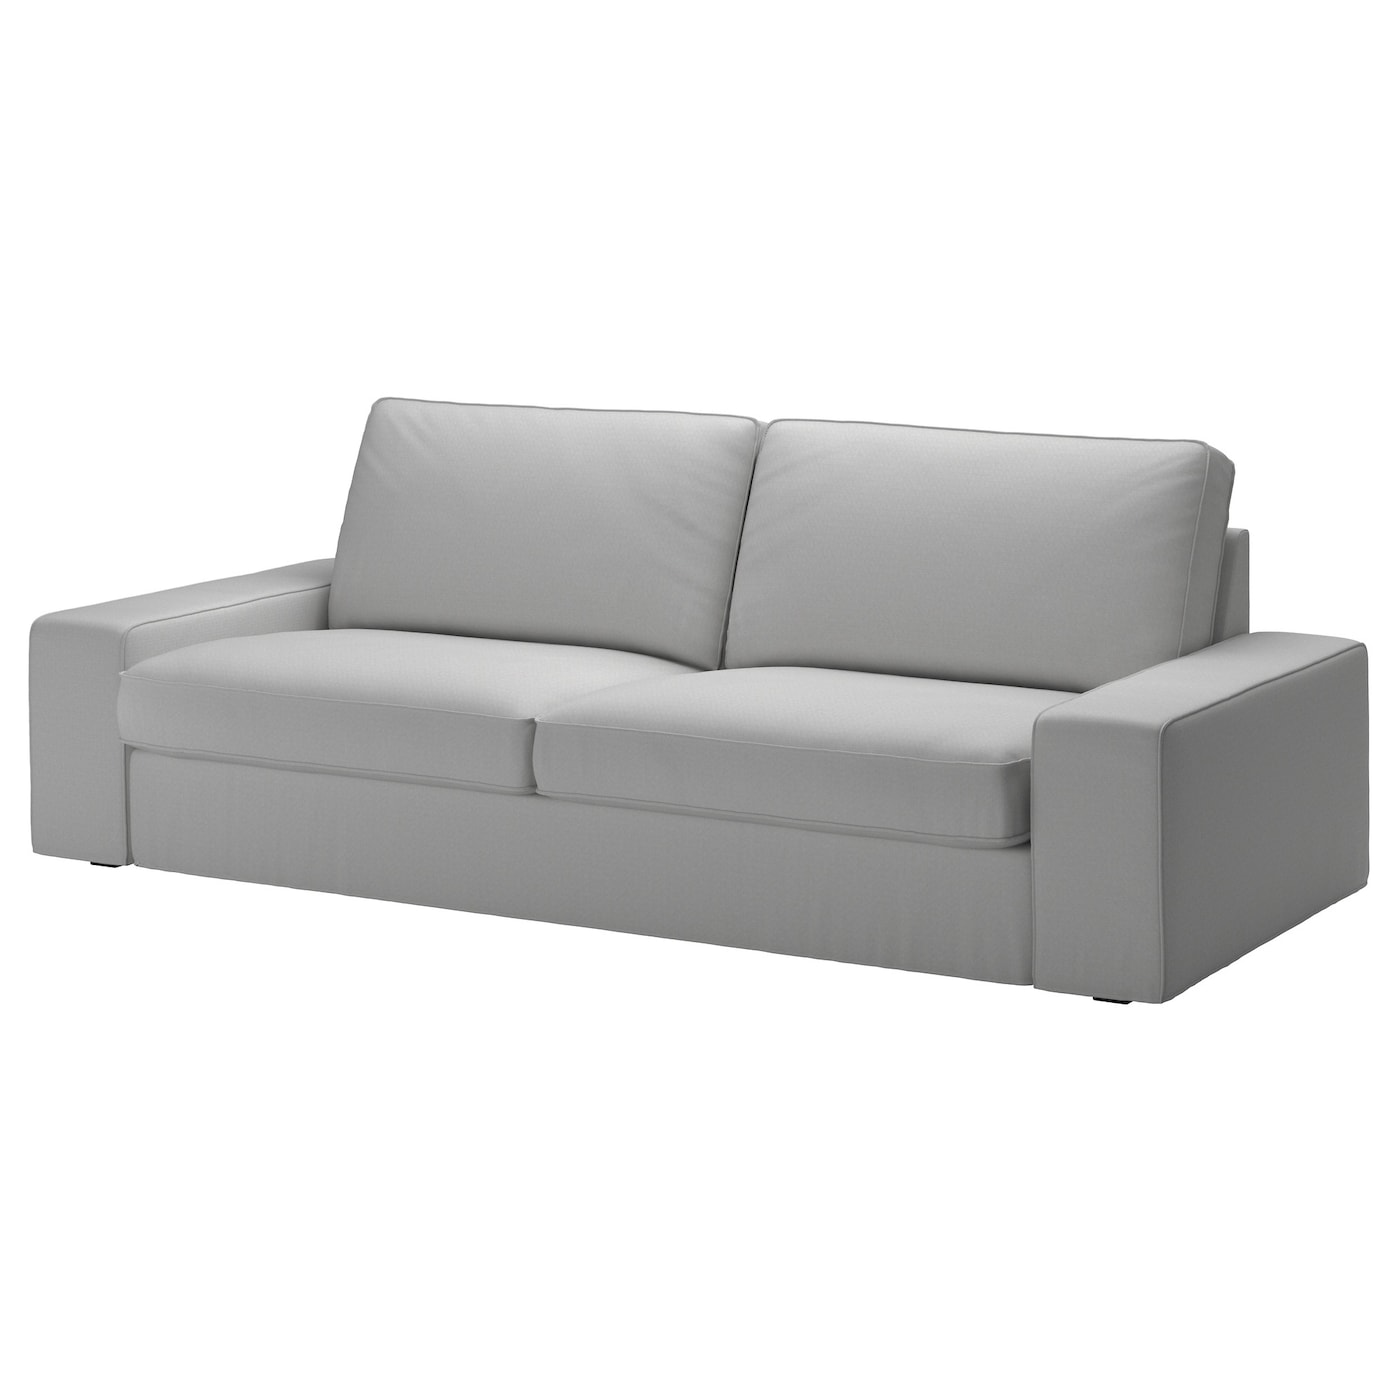 IKEA KIVIK three-seat sofa Hard-wearing cotton and polyester cover with texture and a soft feel.